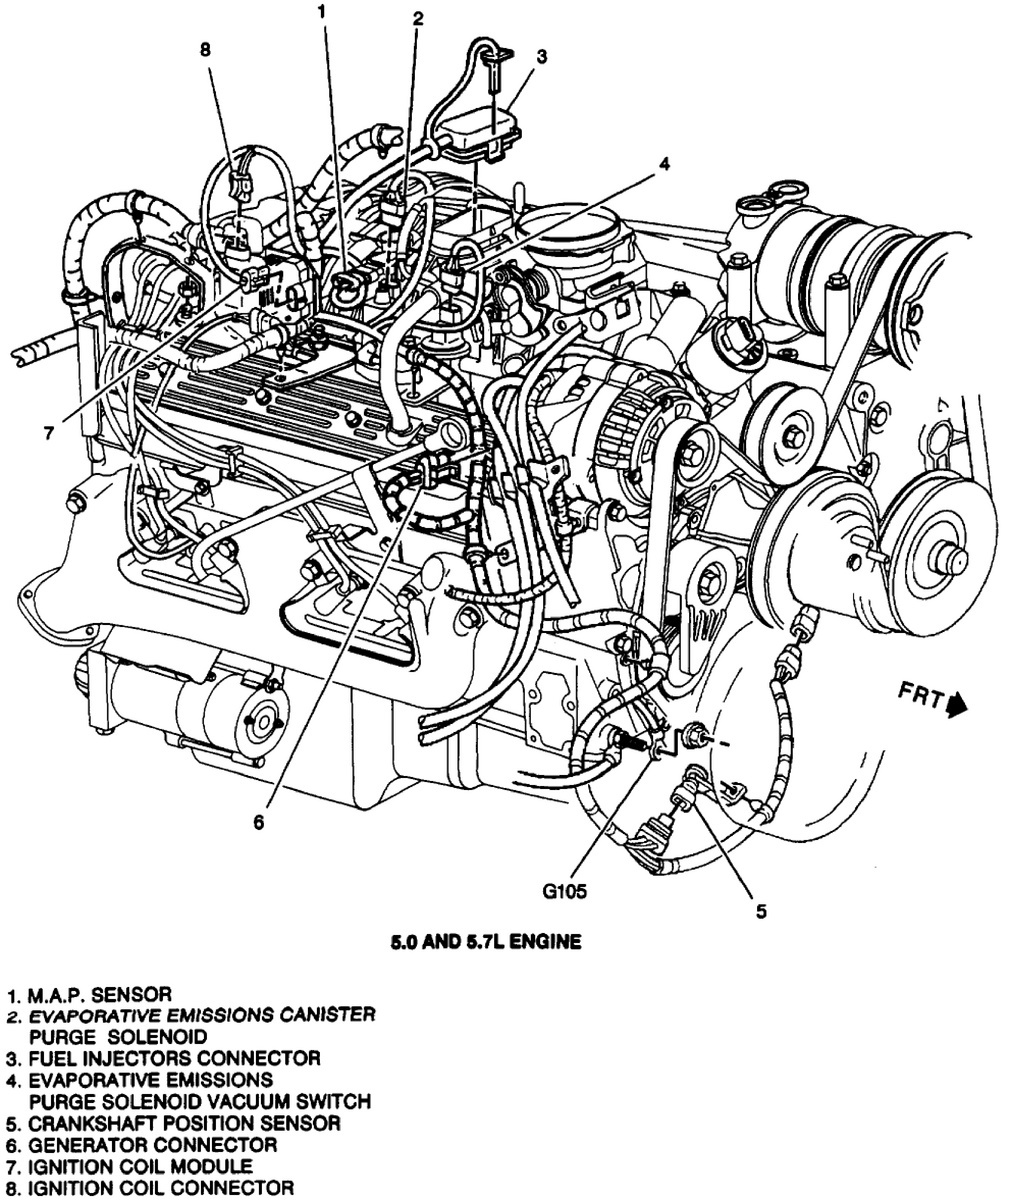 89 Chevy Truck Motor Diagram - Block And Schematic Diagrams •